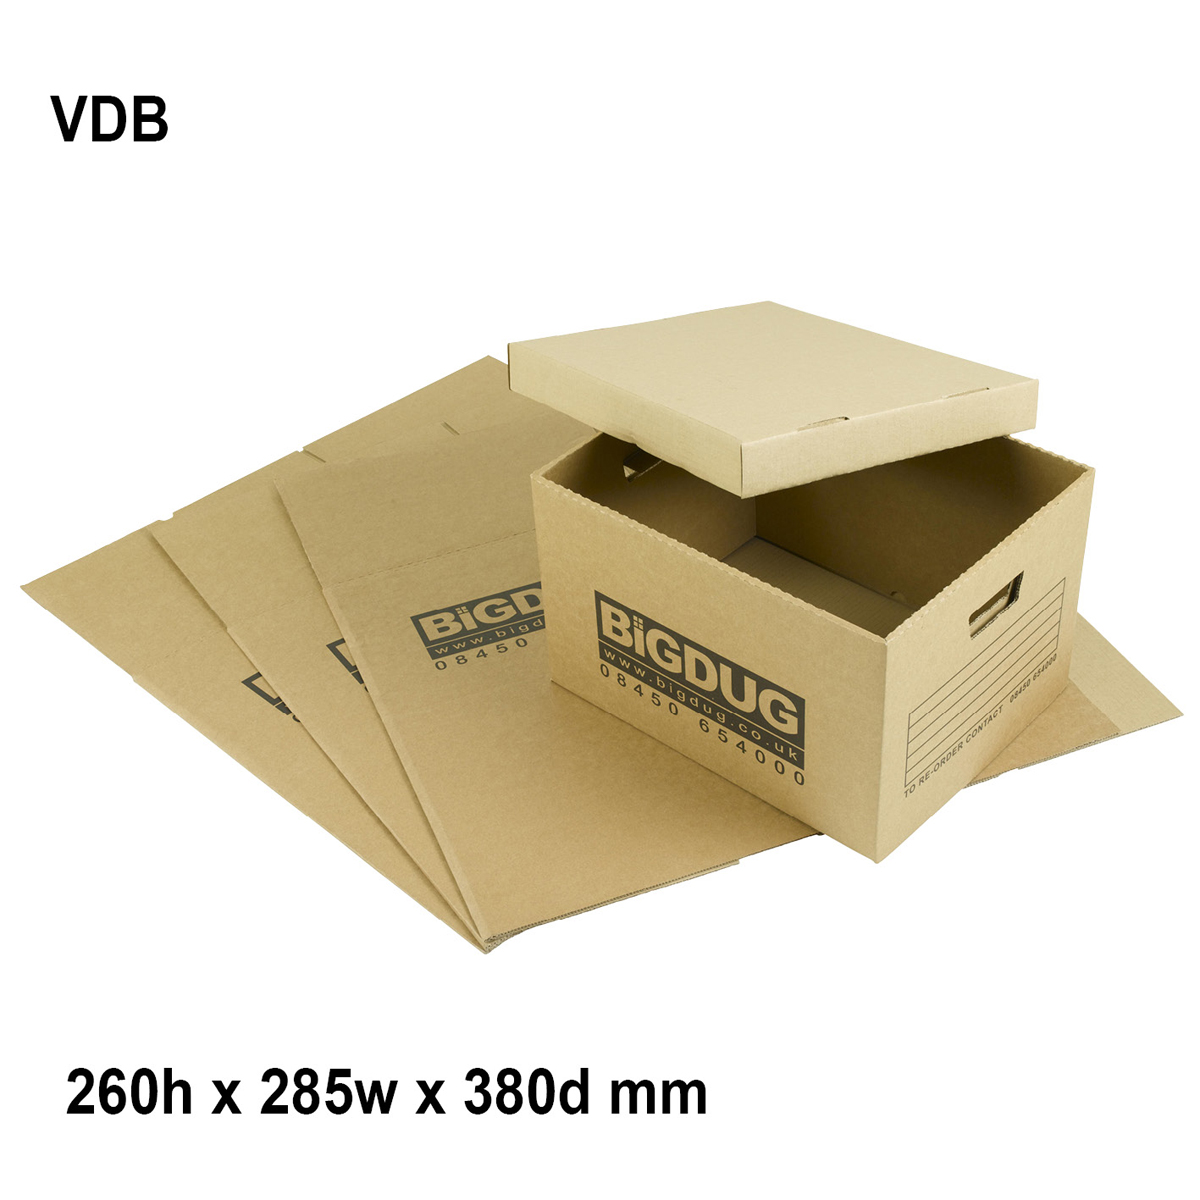 Value Document Box 260h x 285w x 380d mm with Lid 